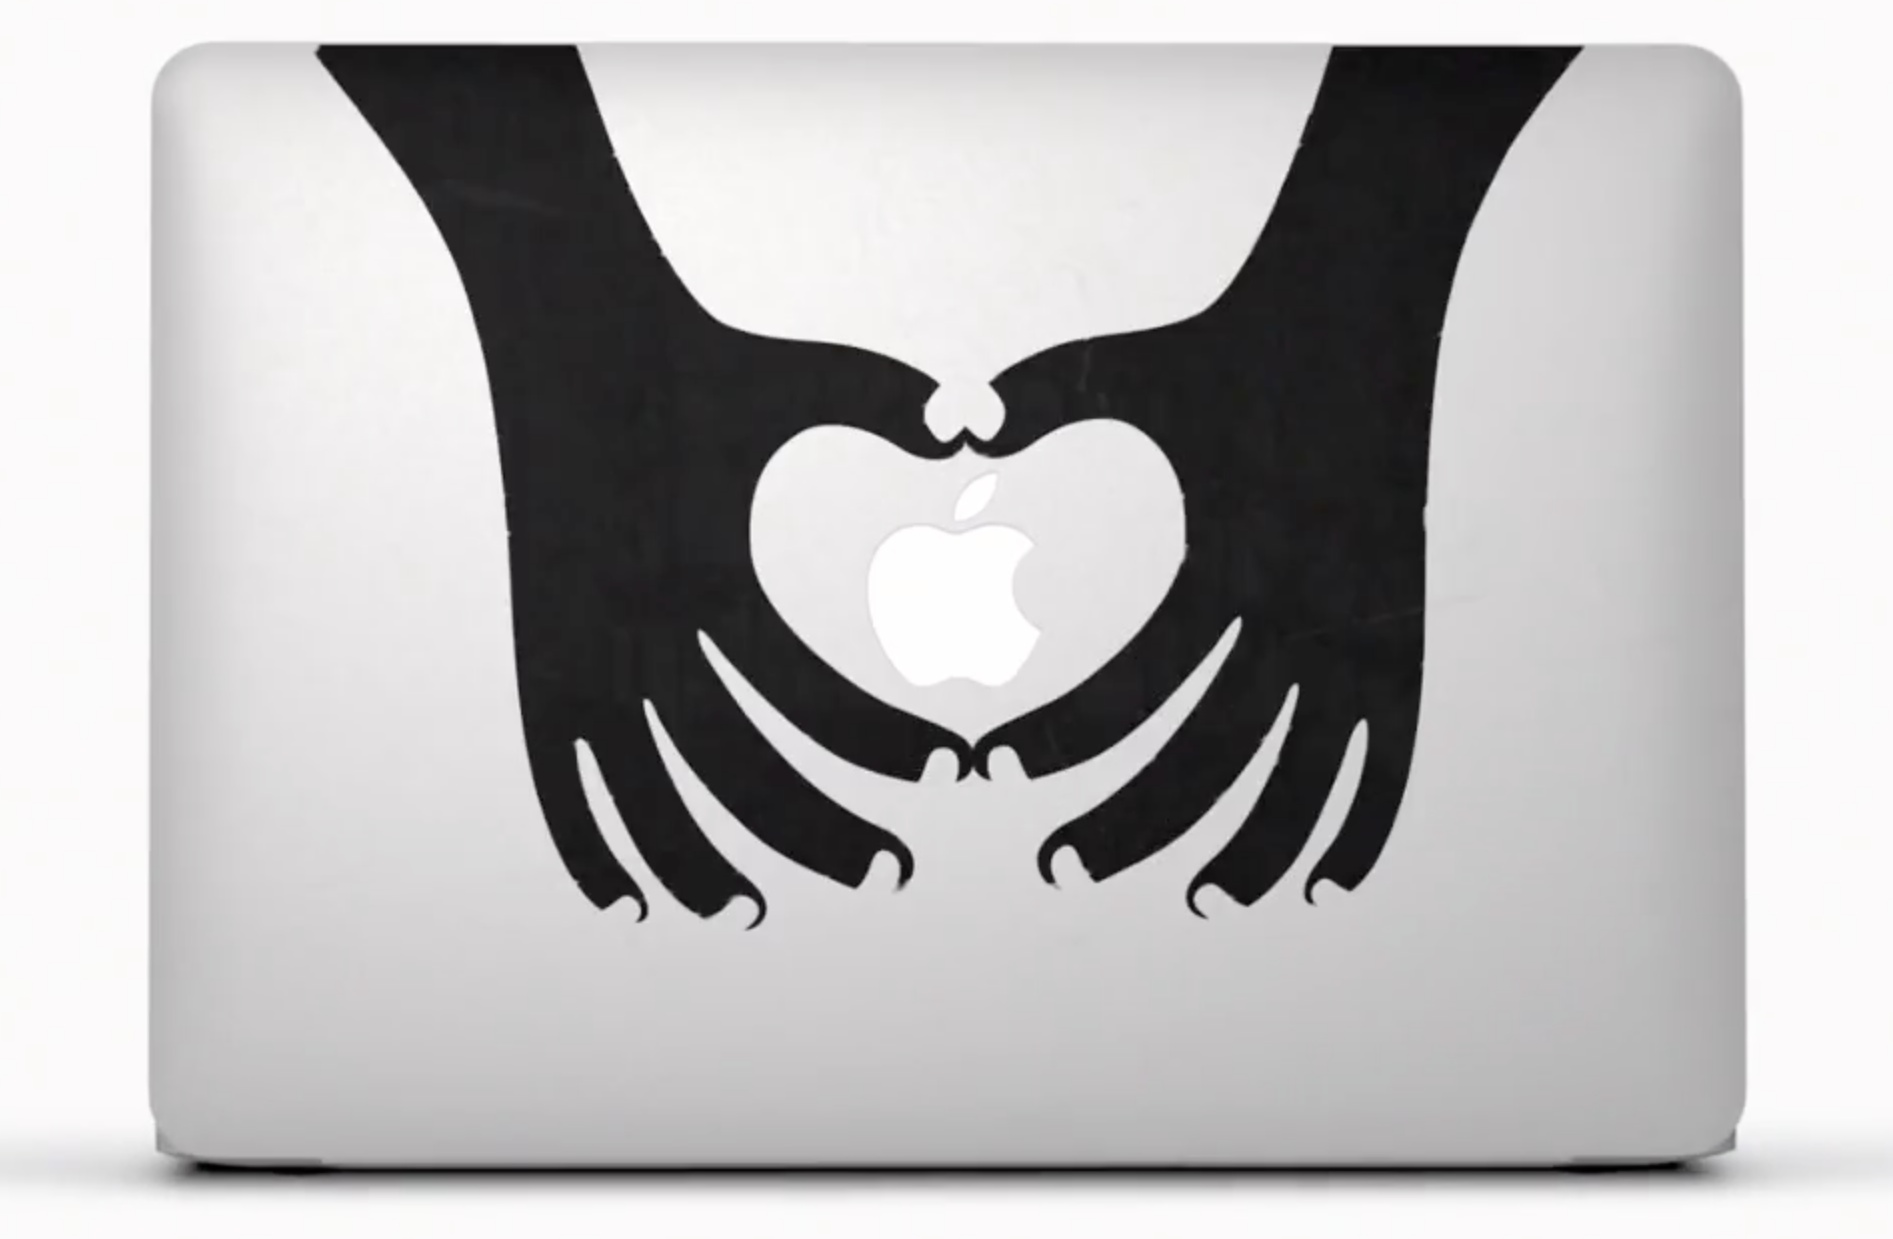 MacBook-Air-stickers-ad-001